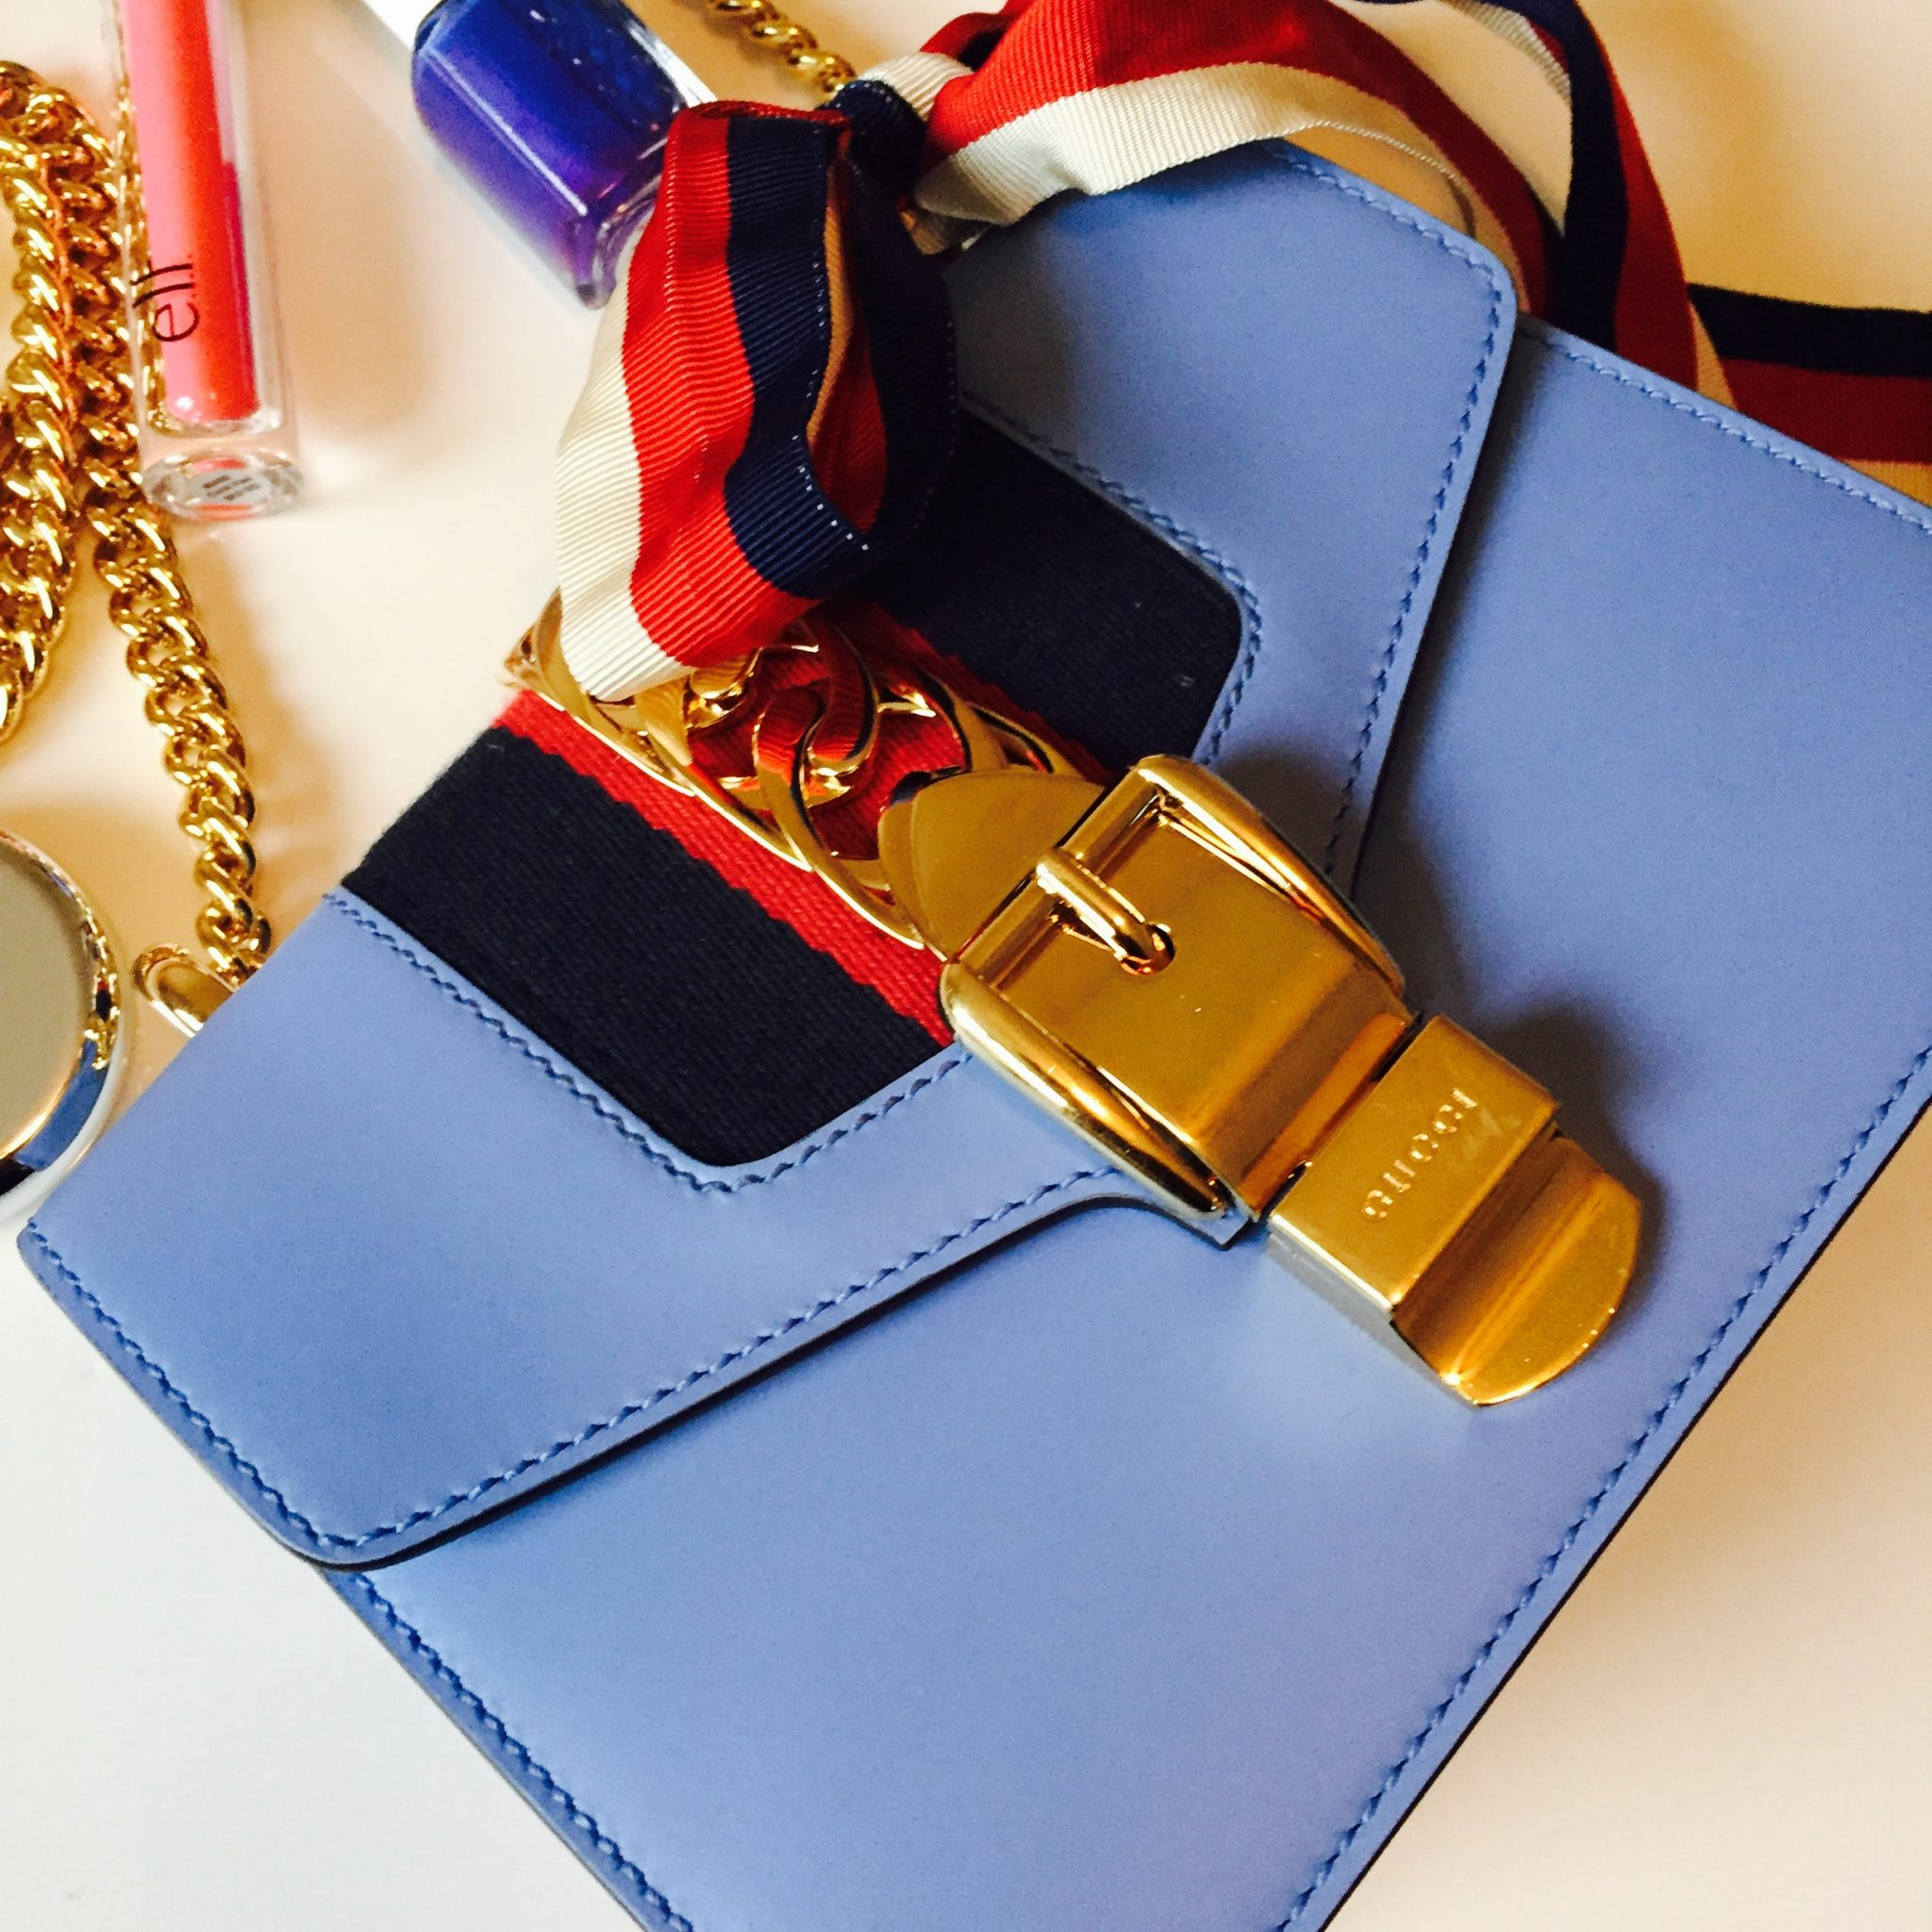 What's In My Bag: Gucci Sylvie Leather Mini Bag